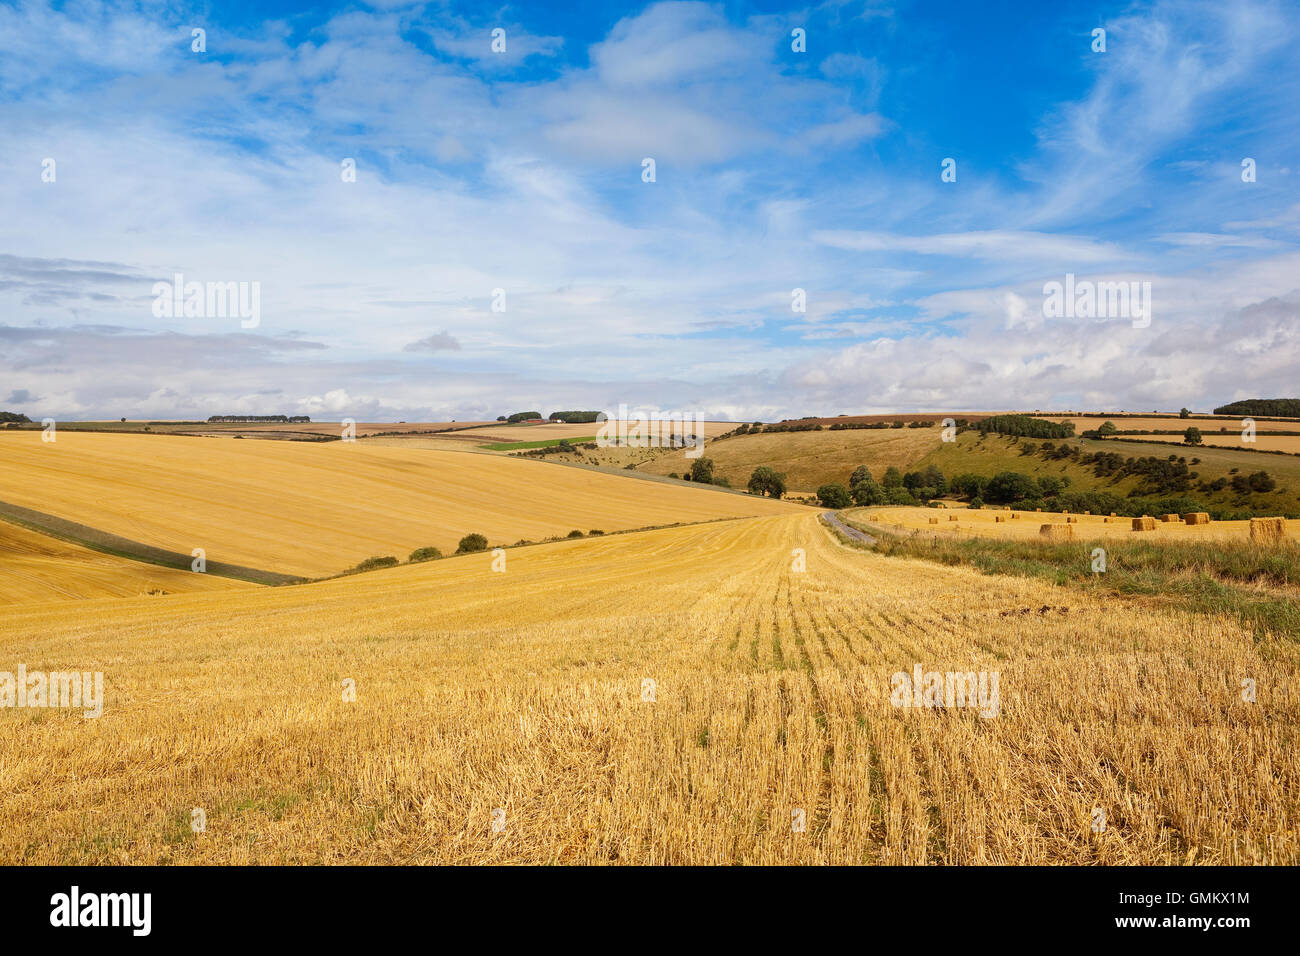 Patterns And Texture Of Newly Harvested Stubble Fields On